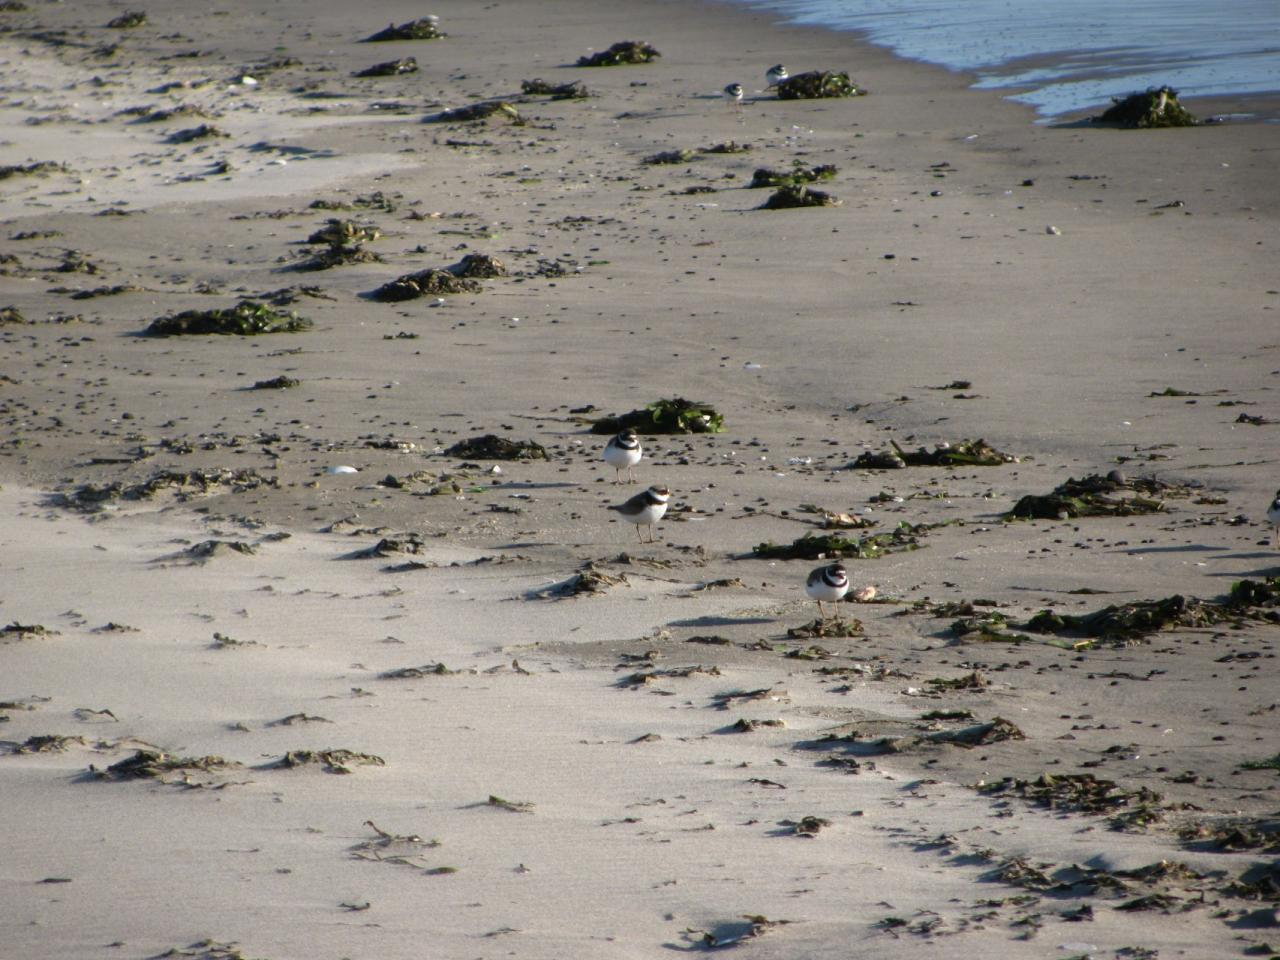 Small groups of Semi-palmated Plovers forage for food near the driftline.